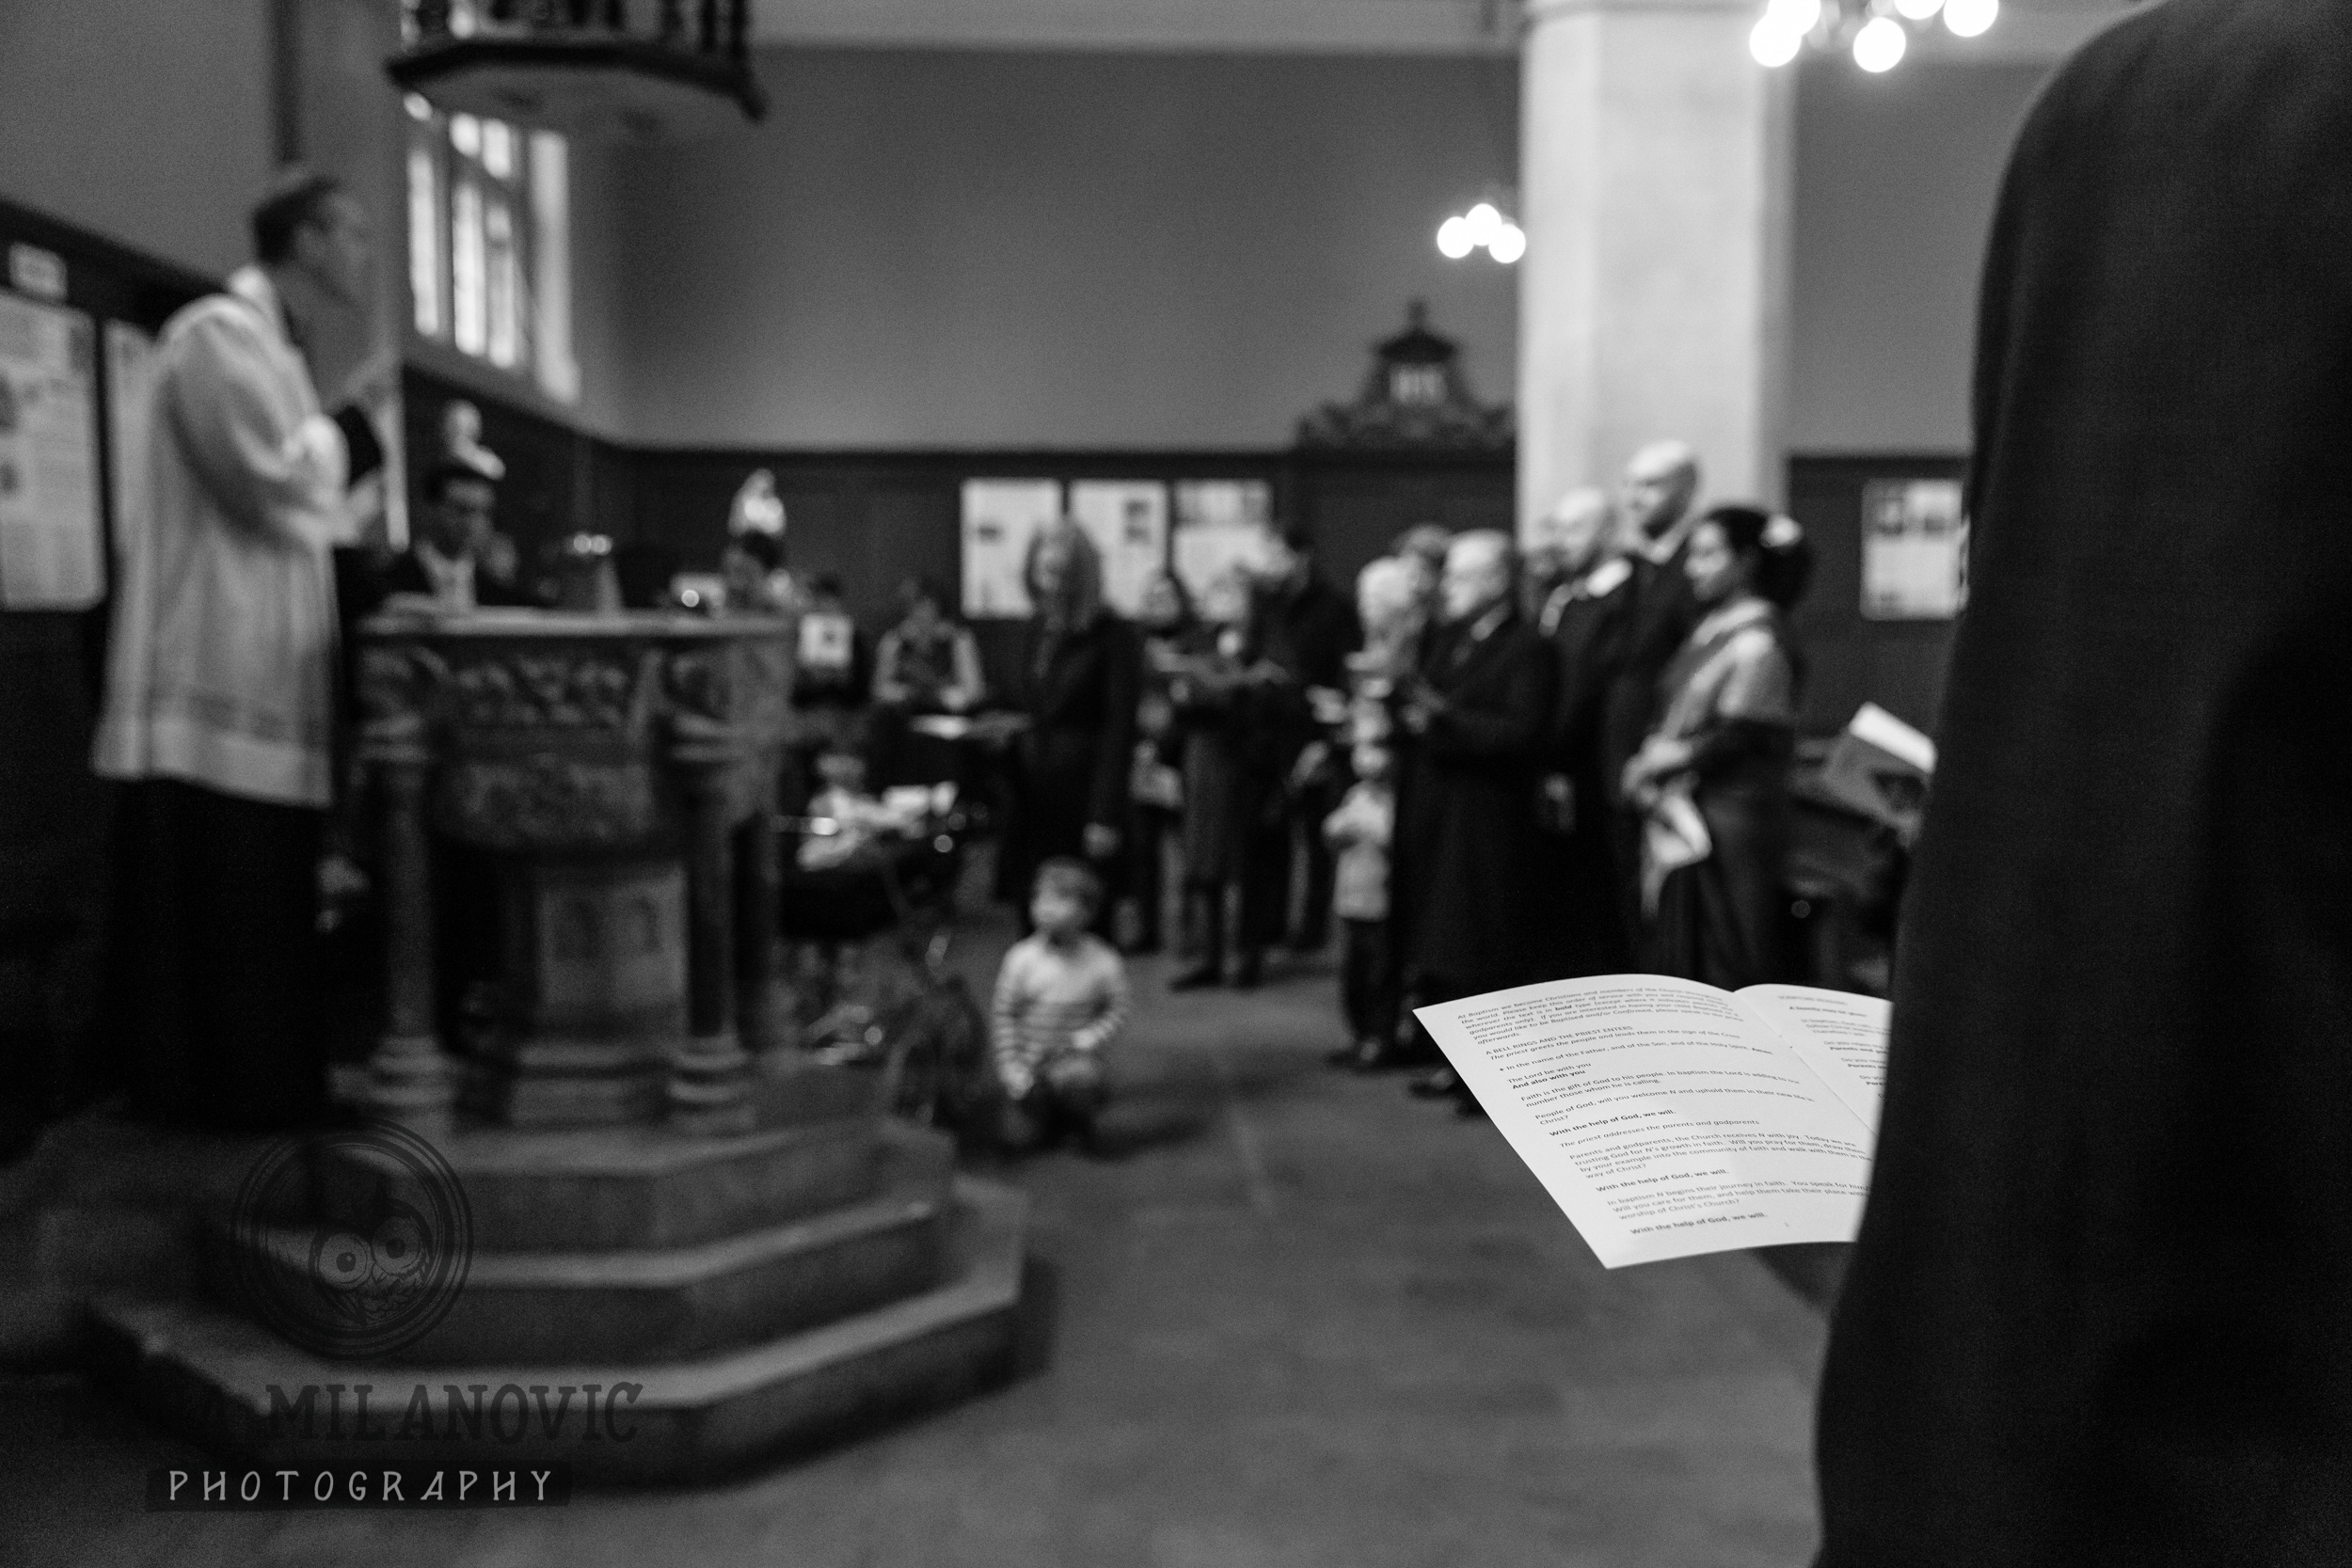 St Michael and All Angels church Chiswick, Richmond-upon-Thames Christening Photographer